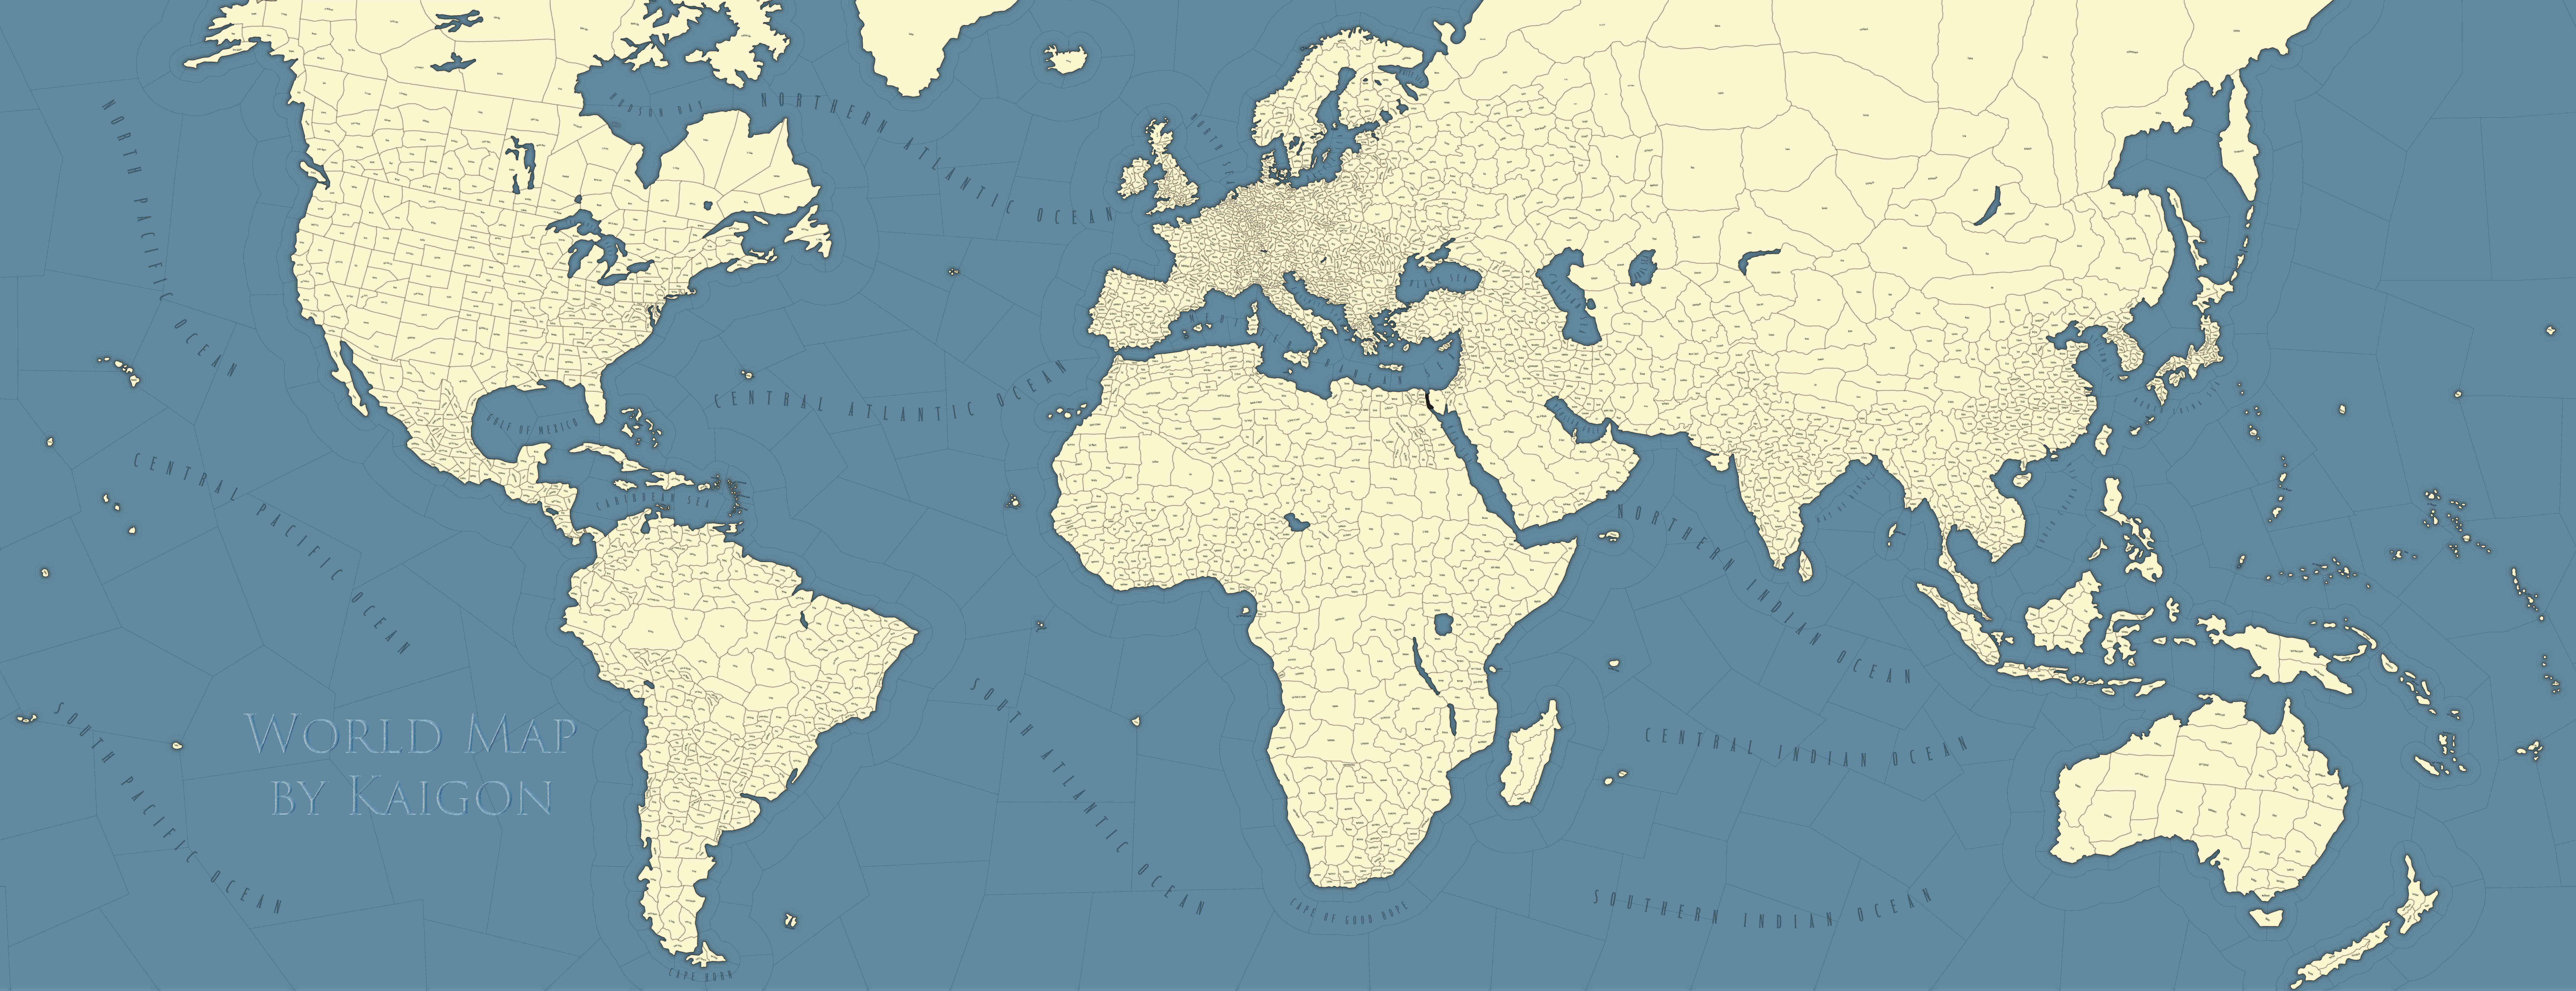 World map outline 2 picture ideas references world map outline 2 image of blank world map world map outline world river map outline gumiabroncs Images